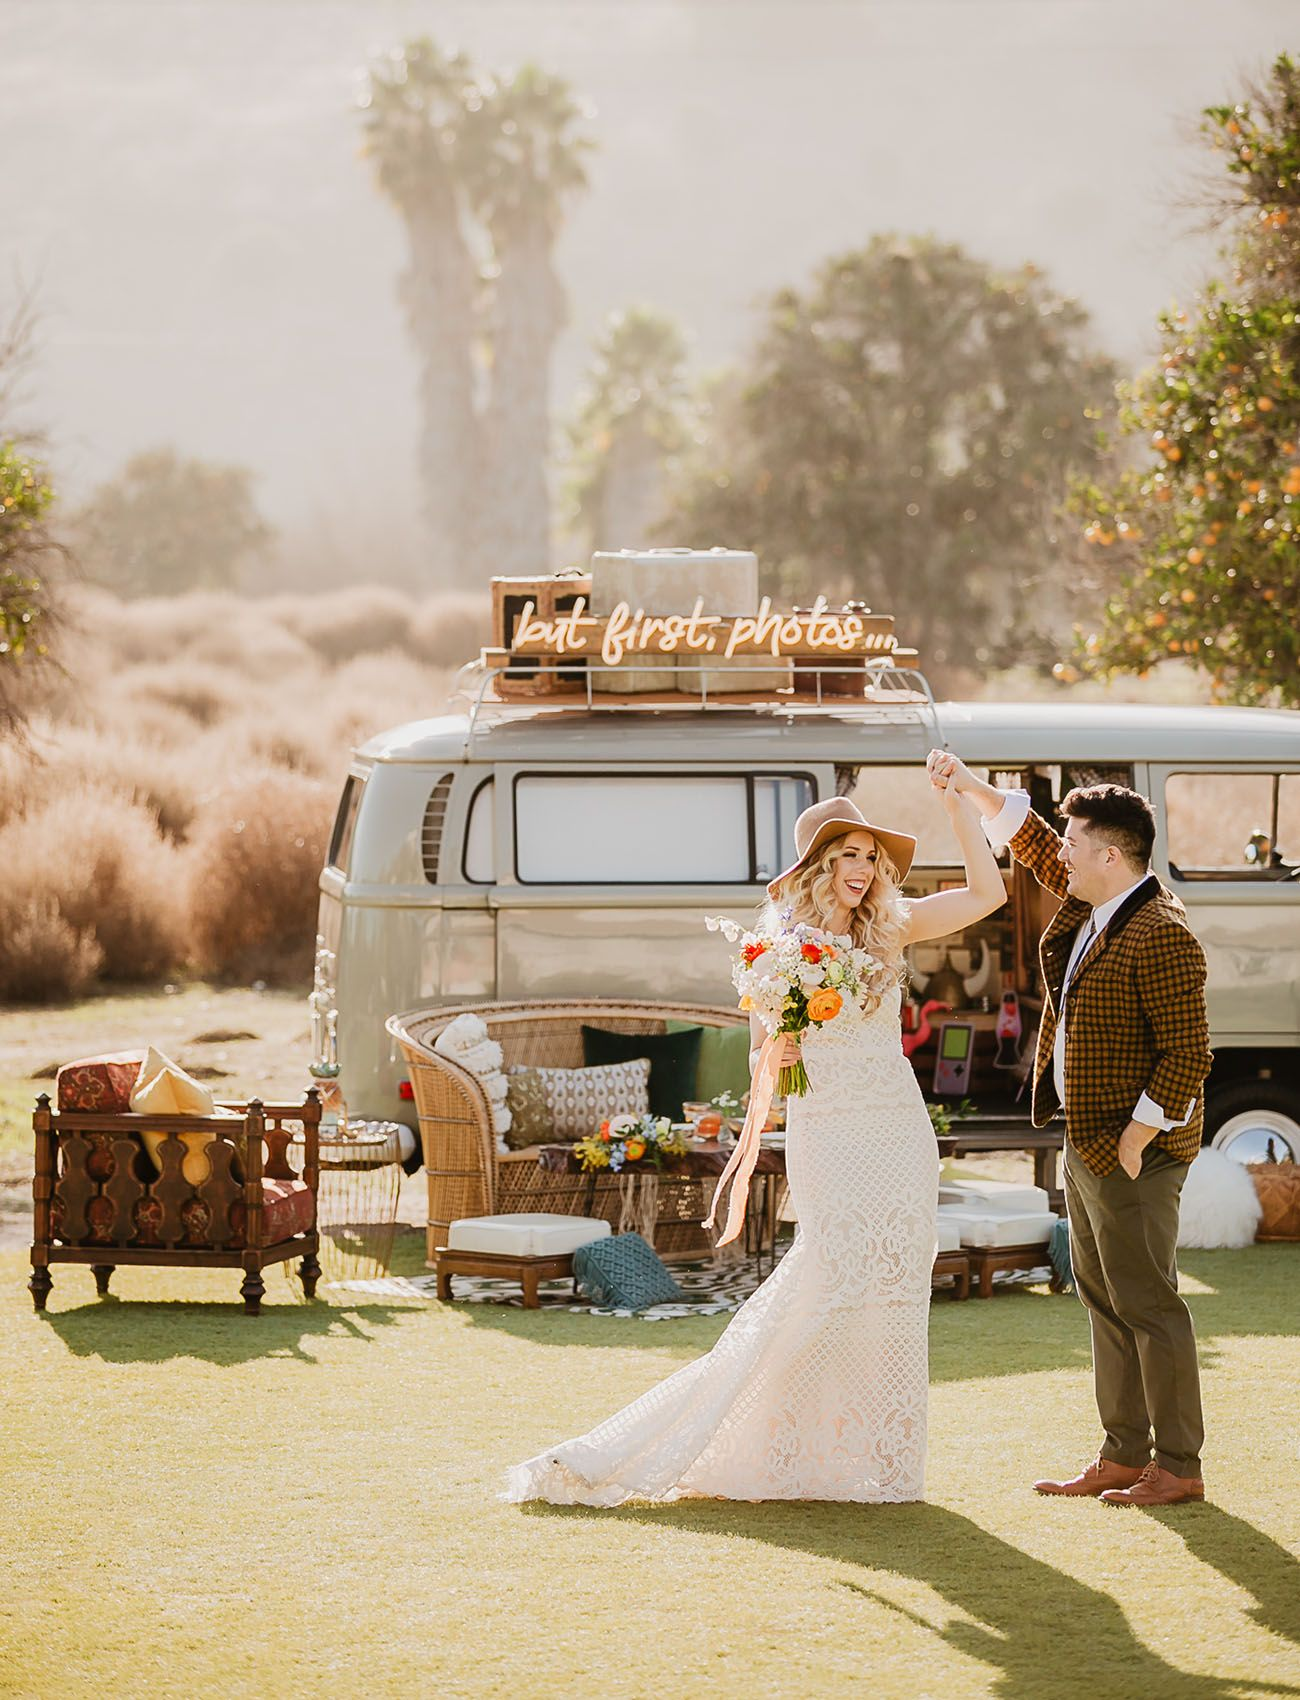 Here Comes The Sun Groovy Mustard Yellow 70s Wedding Inspiration With A Vw Bus Green Wedding Shoes In 2020 Vintage Wedding Theme Vintage Wedding Dresses Uk Orange County Wedding Venues